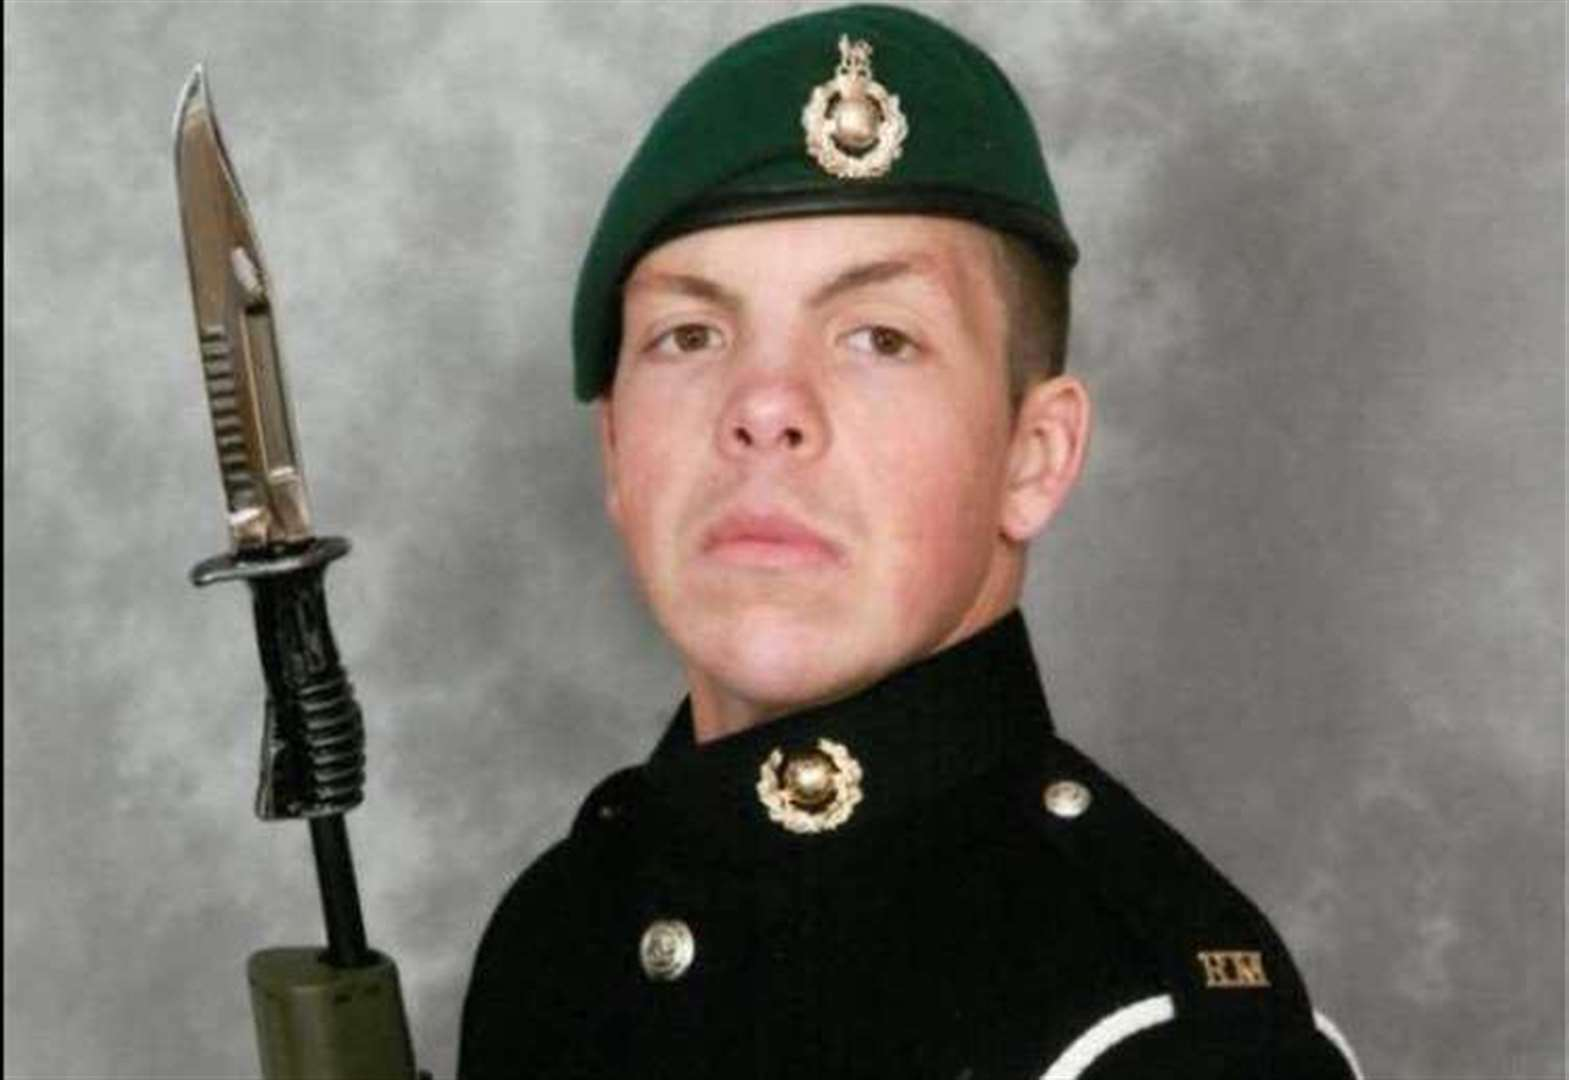 INQUEST REPORT: Billingborough Royal Marine died of gunshot wound from his own rifle